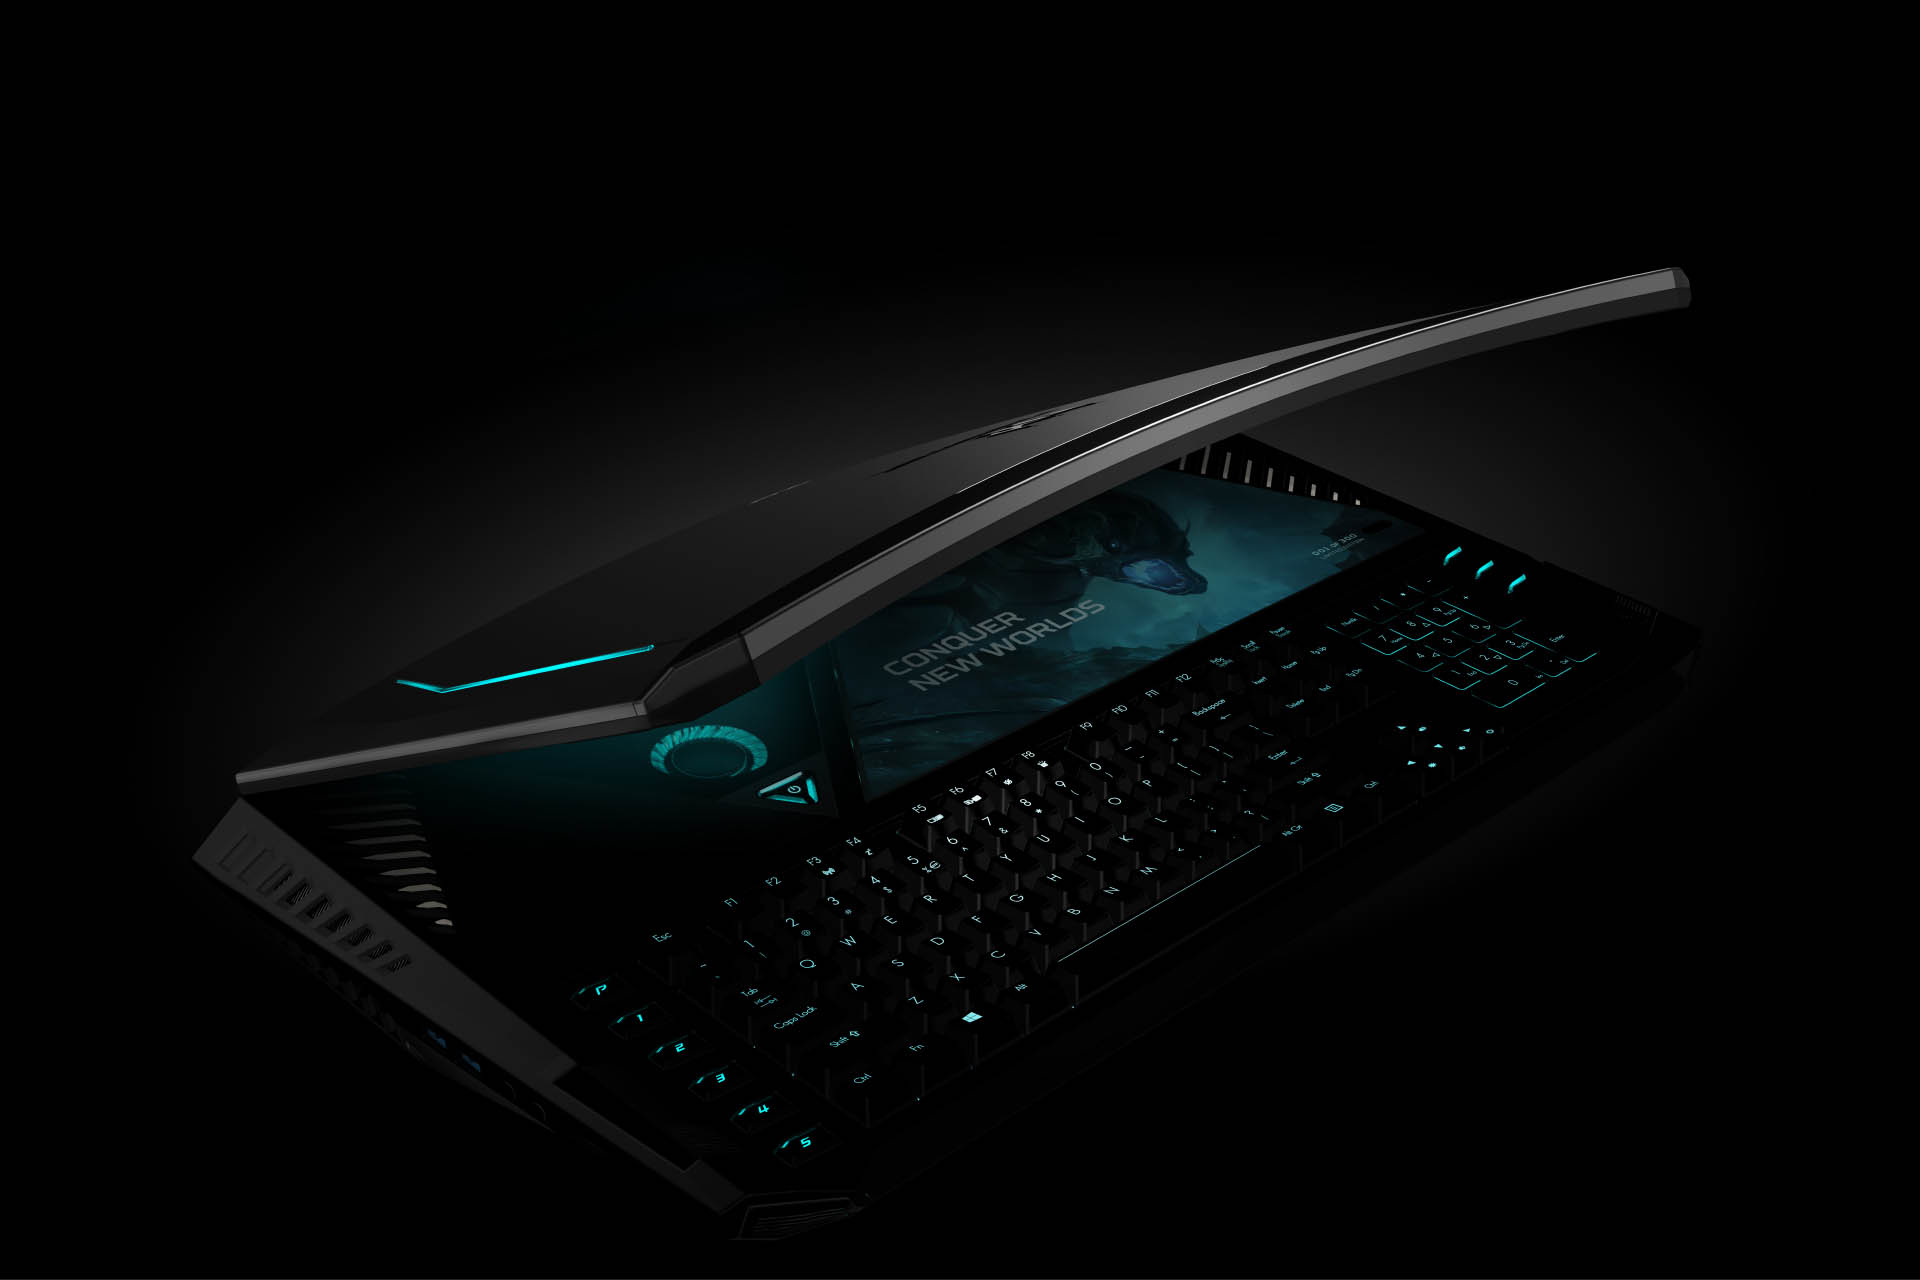 Acers Predator 21 X Gaming Laptop Worlds First Curved